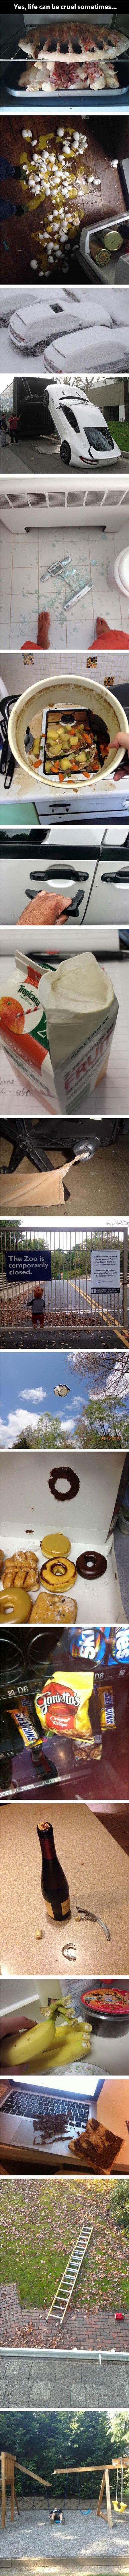 If you thought YOU were having a hard day... That last picture. I'm dying. | See more about wine bottles, the zoo and zoos.